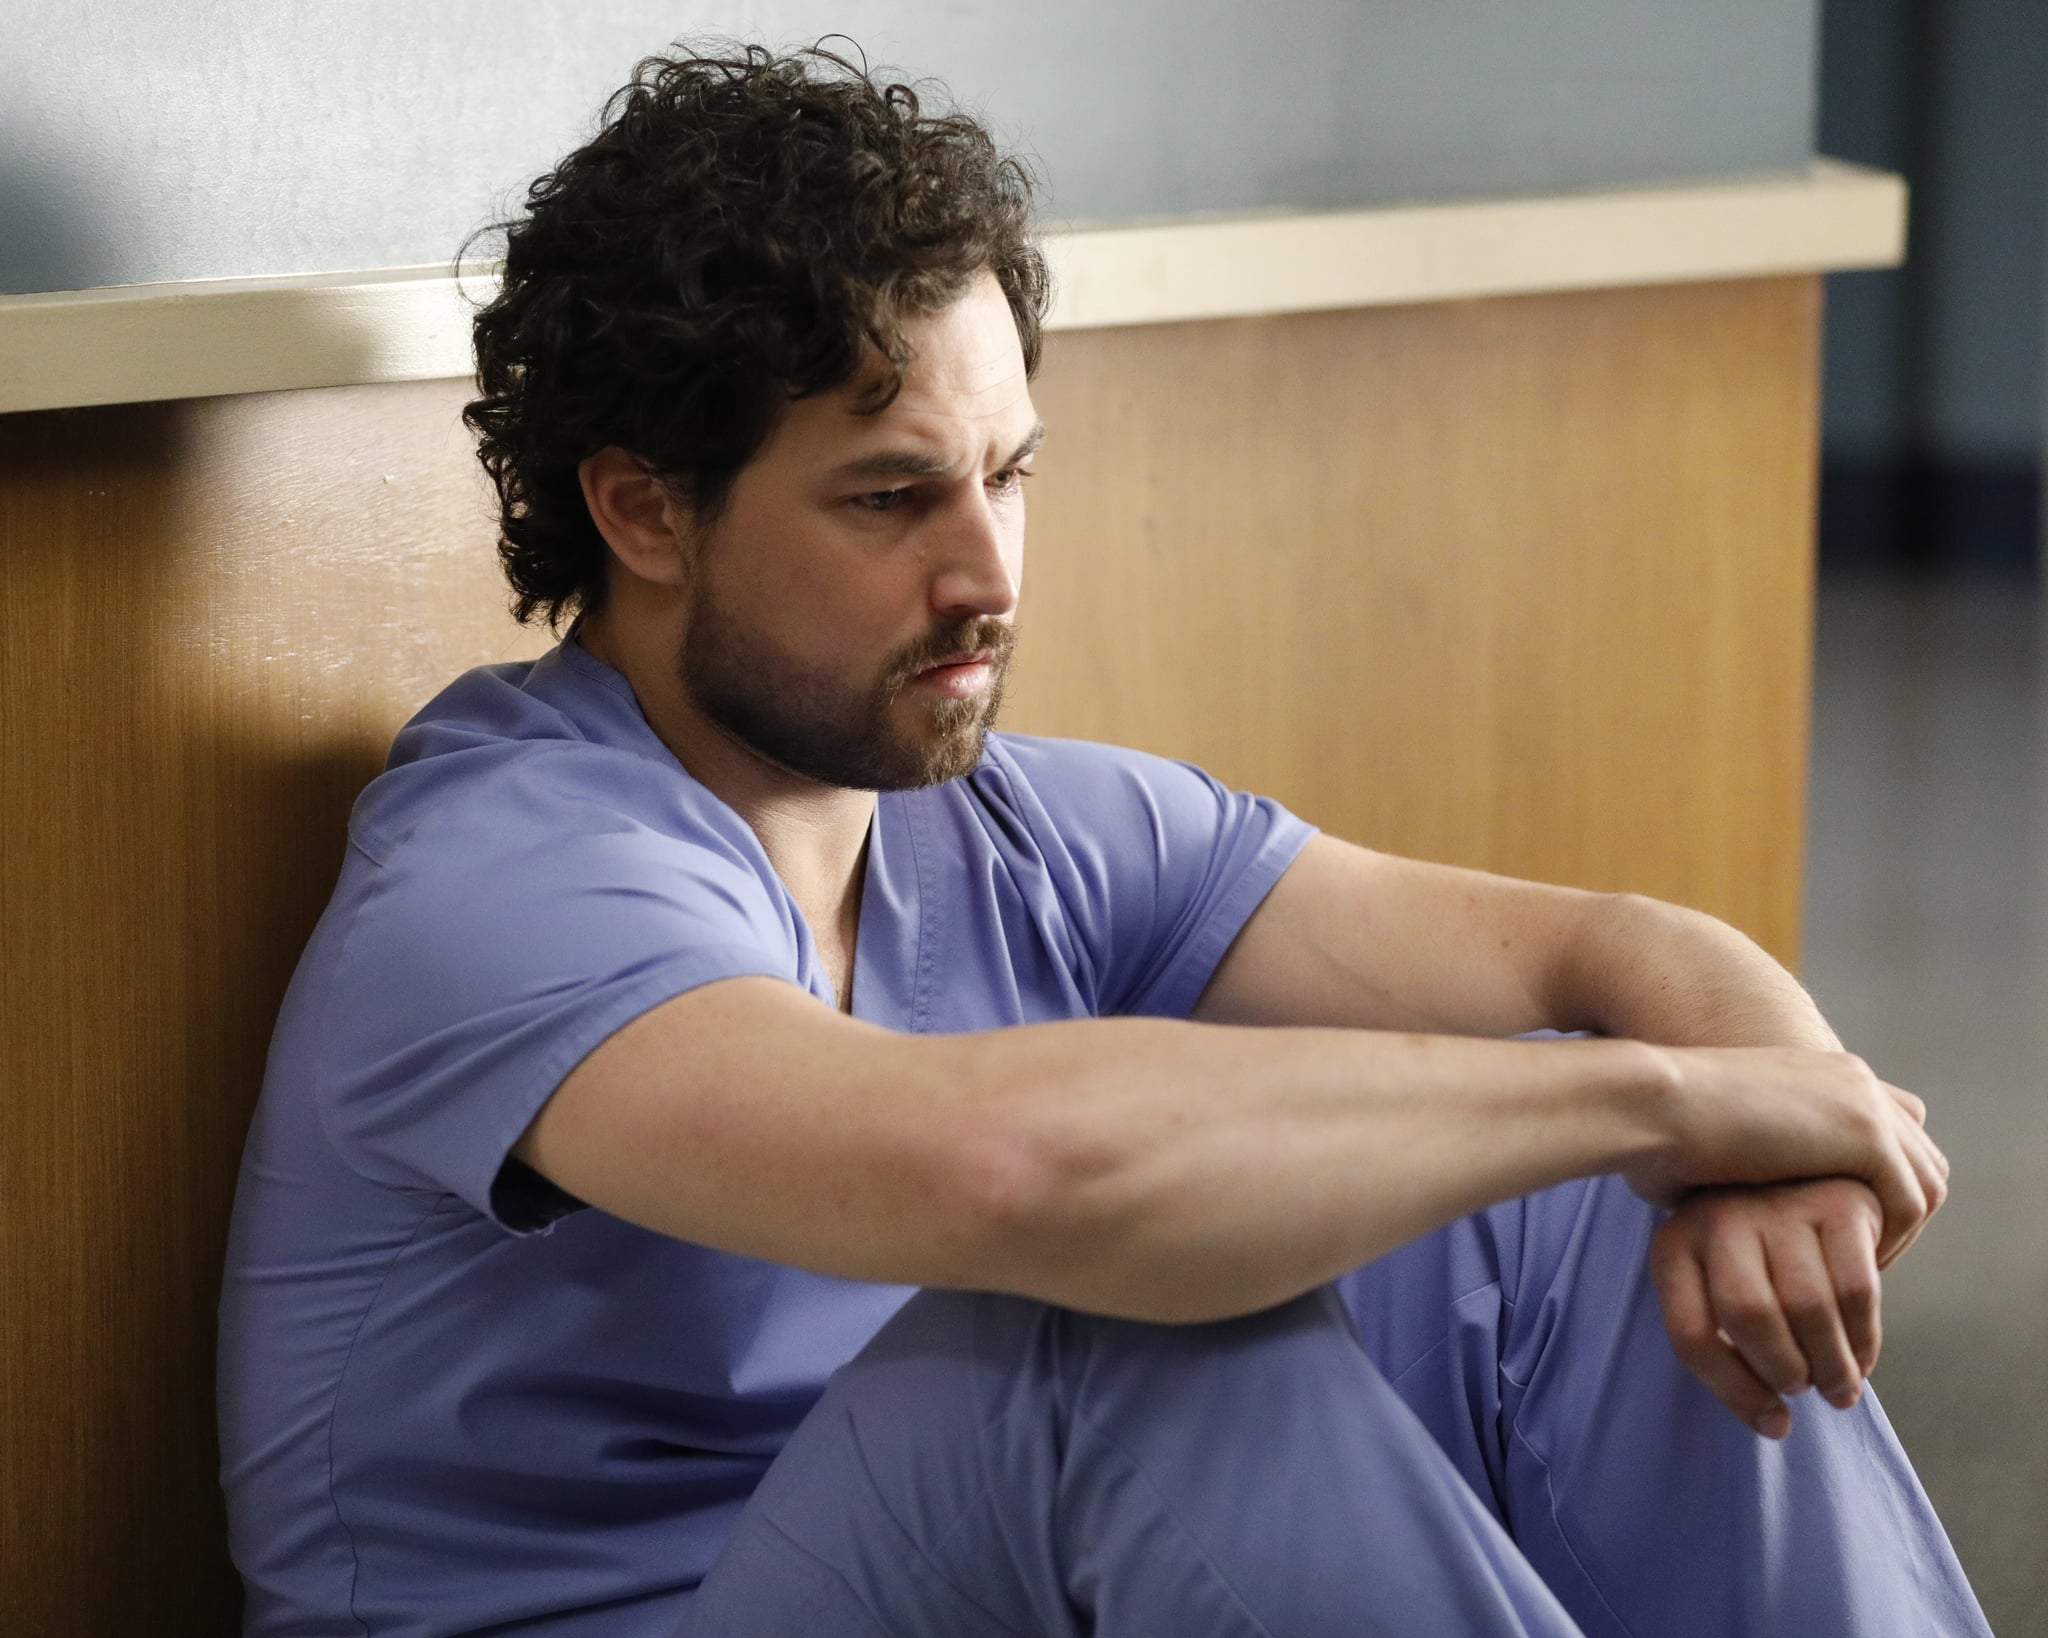 GREYS ANATOMY - Put on a Happy Face  Link tries to convince Amelia to take it easy during the final stage of her pregnancy. Hayes asks Meredith a surprising question, and Owen makes a shocking discovery, on the season finale of Greys Anatomy, THURSDAY, APRIL 9 (9:00-10:01 p.m. EDT), on ABC. (ABC/Raymond Liu)GIACOMO GIANNIOTTI